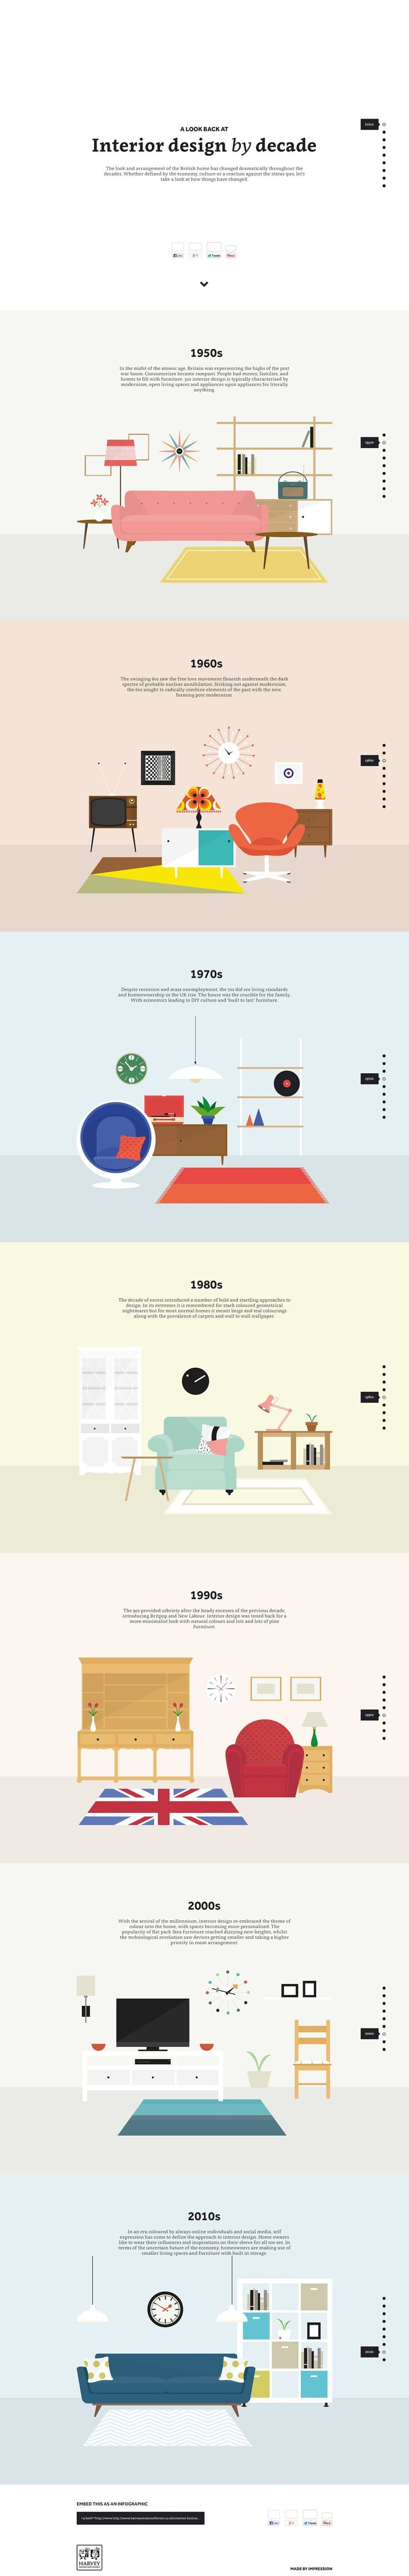 interior design trends by the decade infographic |  | @themissprints